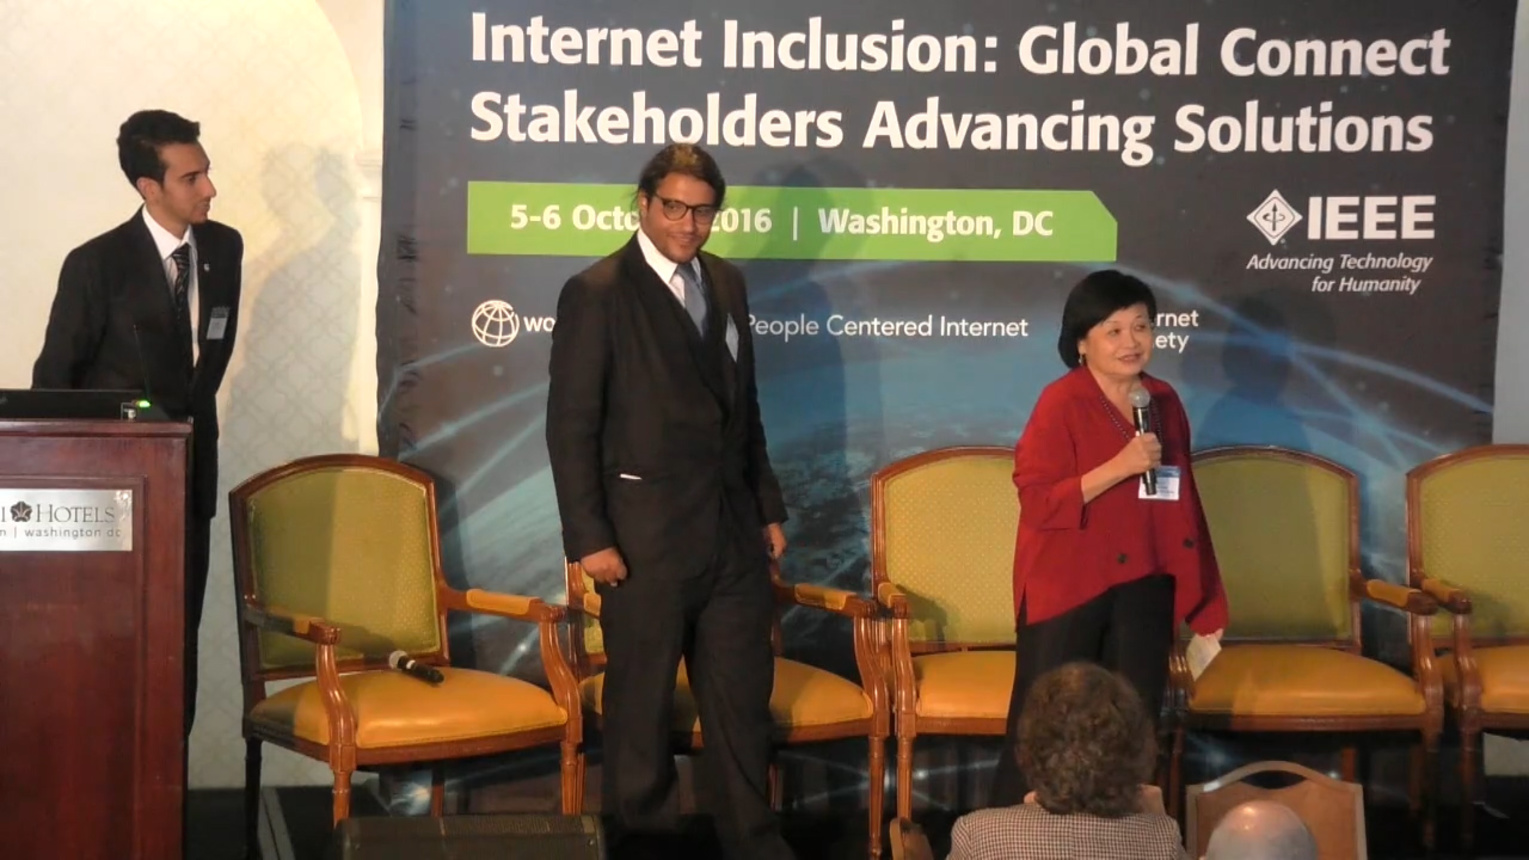 Examples for Success in 2020 - Internet Inclusion: Global Connect Stakeholders Advancing Solutions, Washington DC, 2016